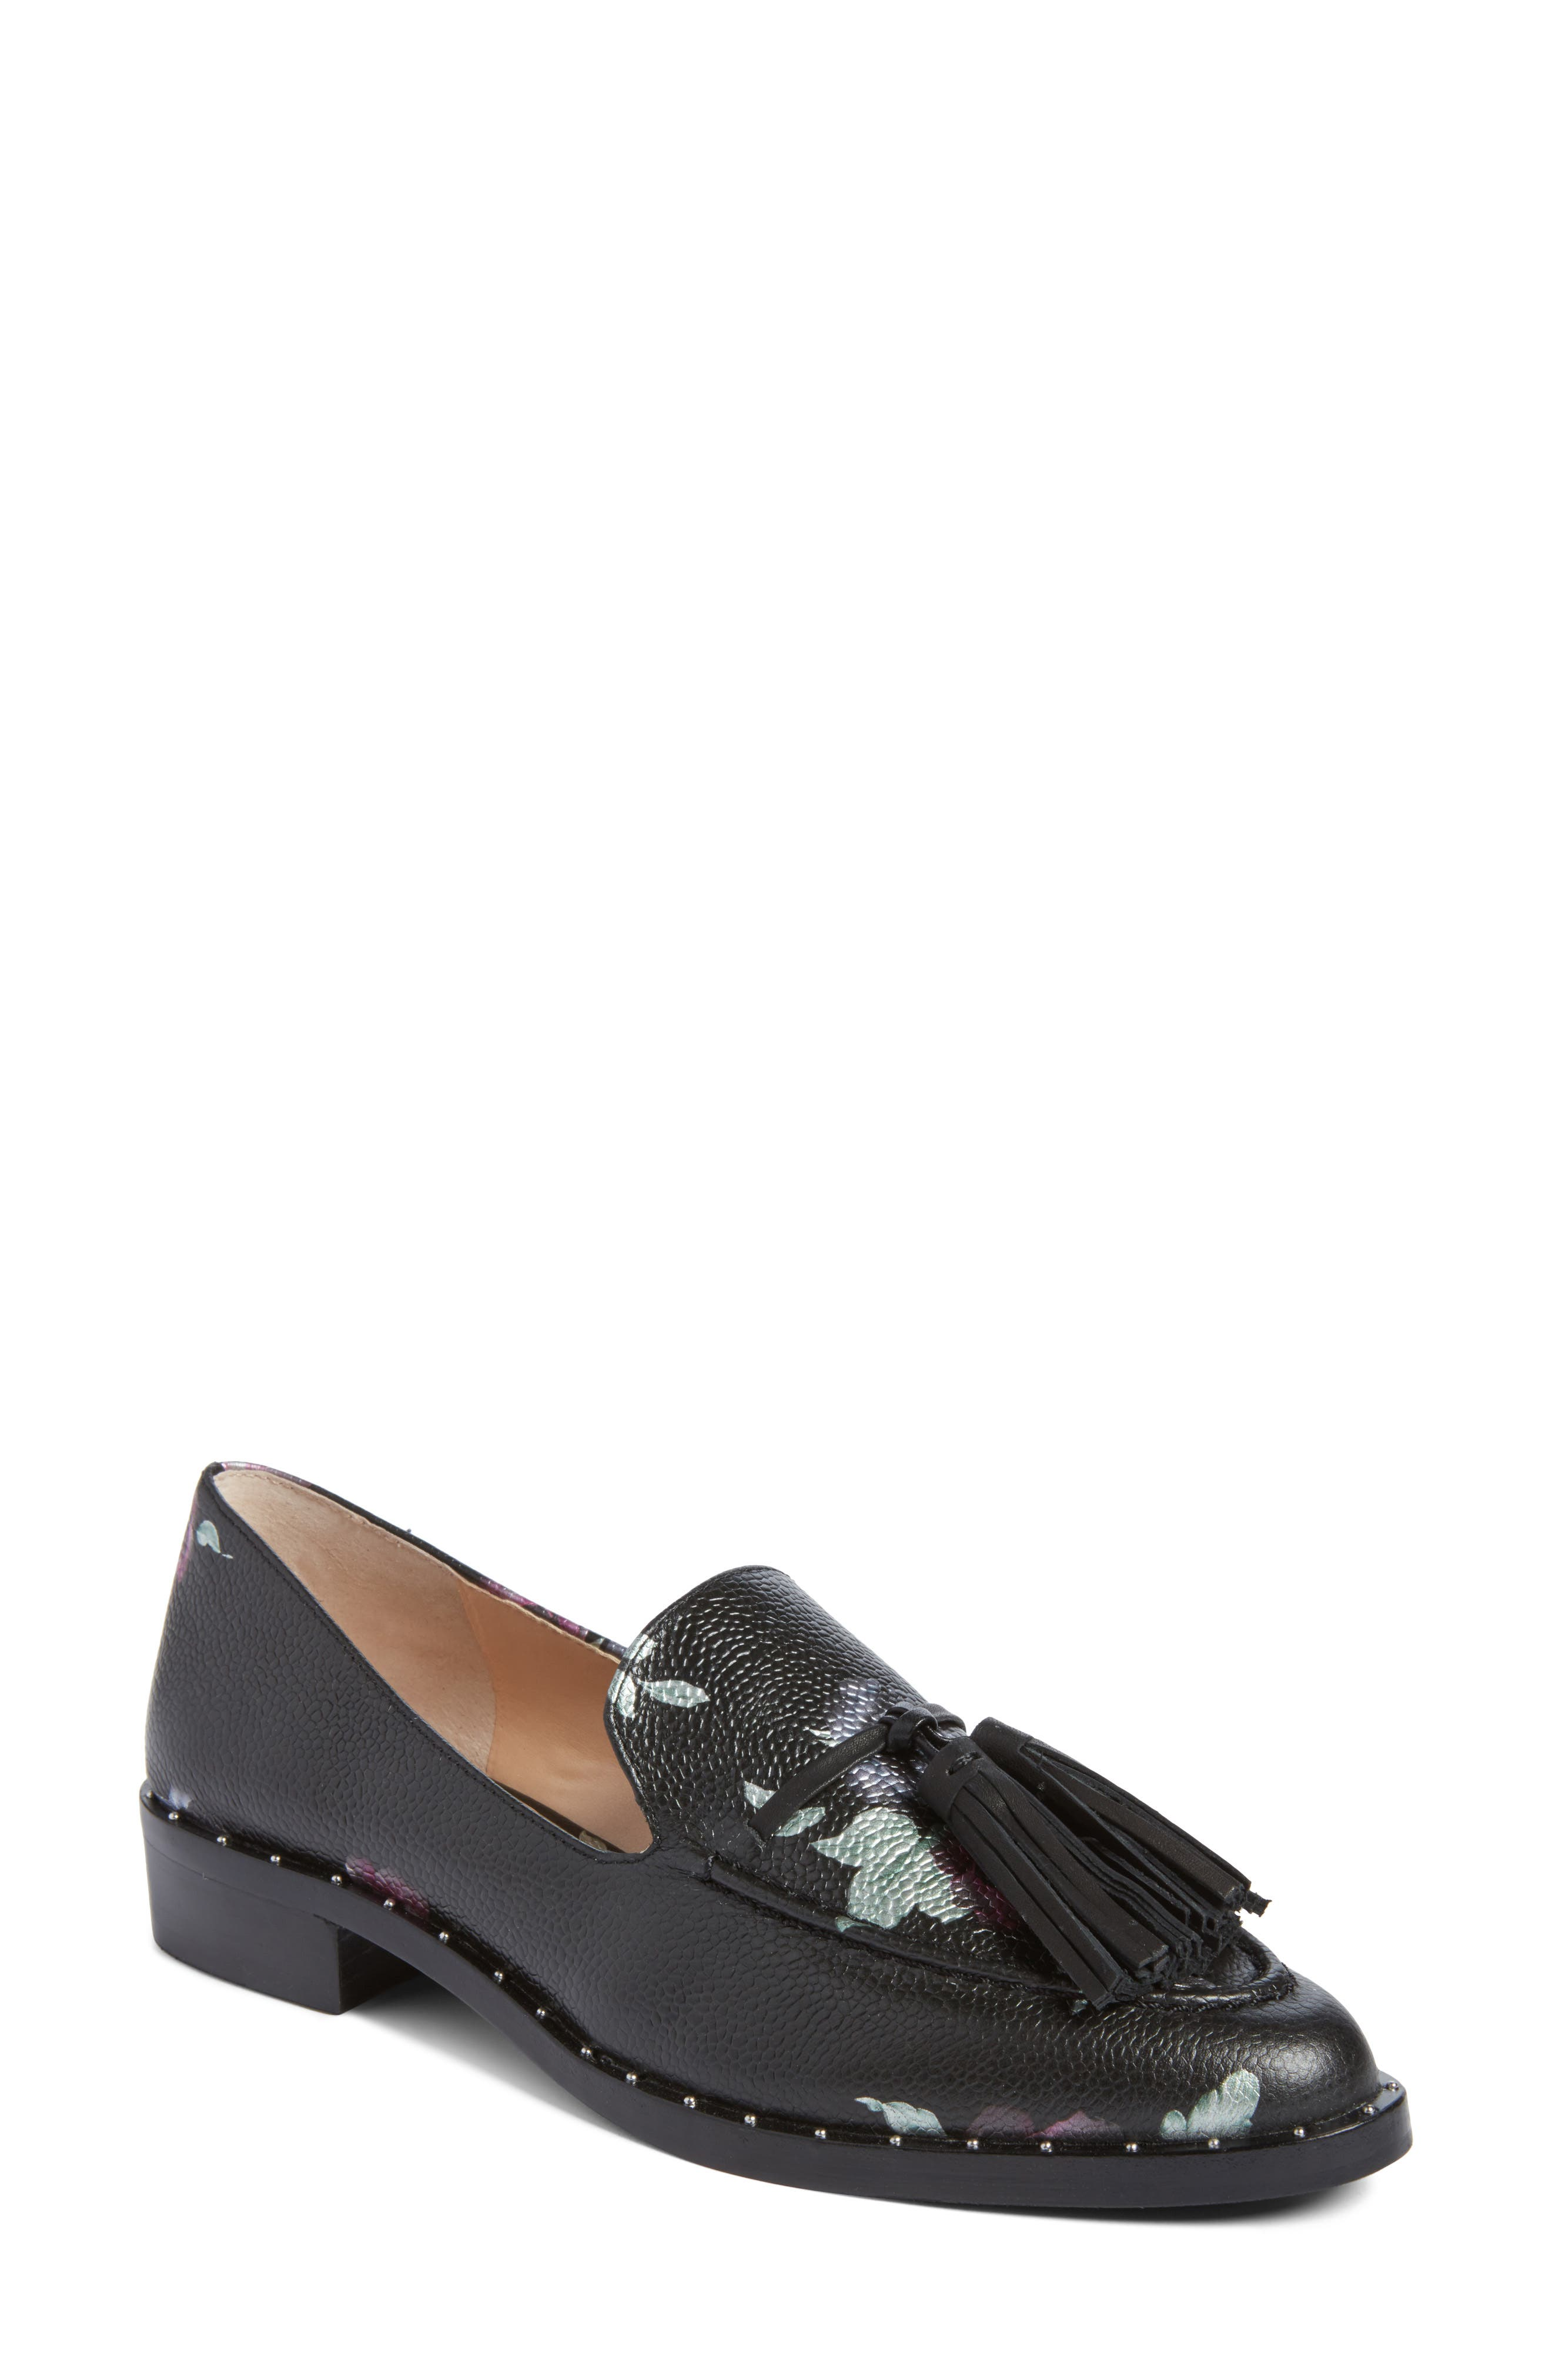 Main Image - Vince Camuto Geralin Tassel Loafer (Women)